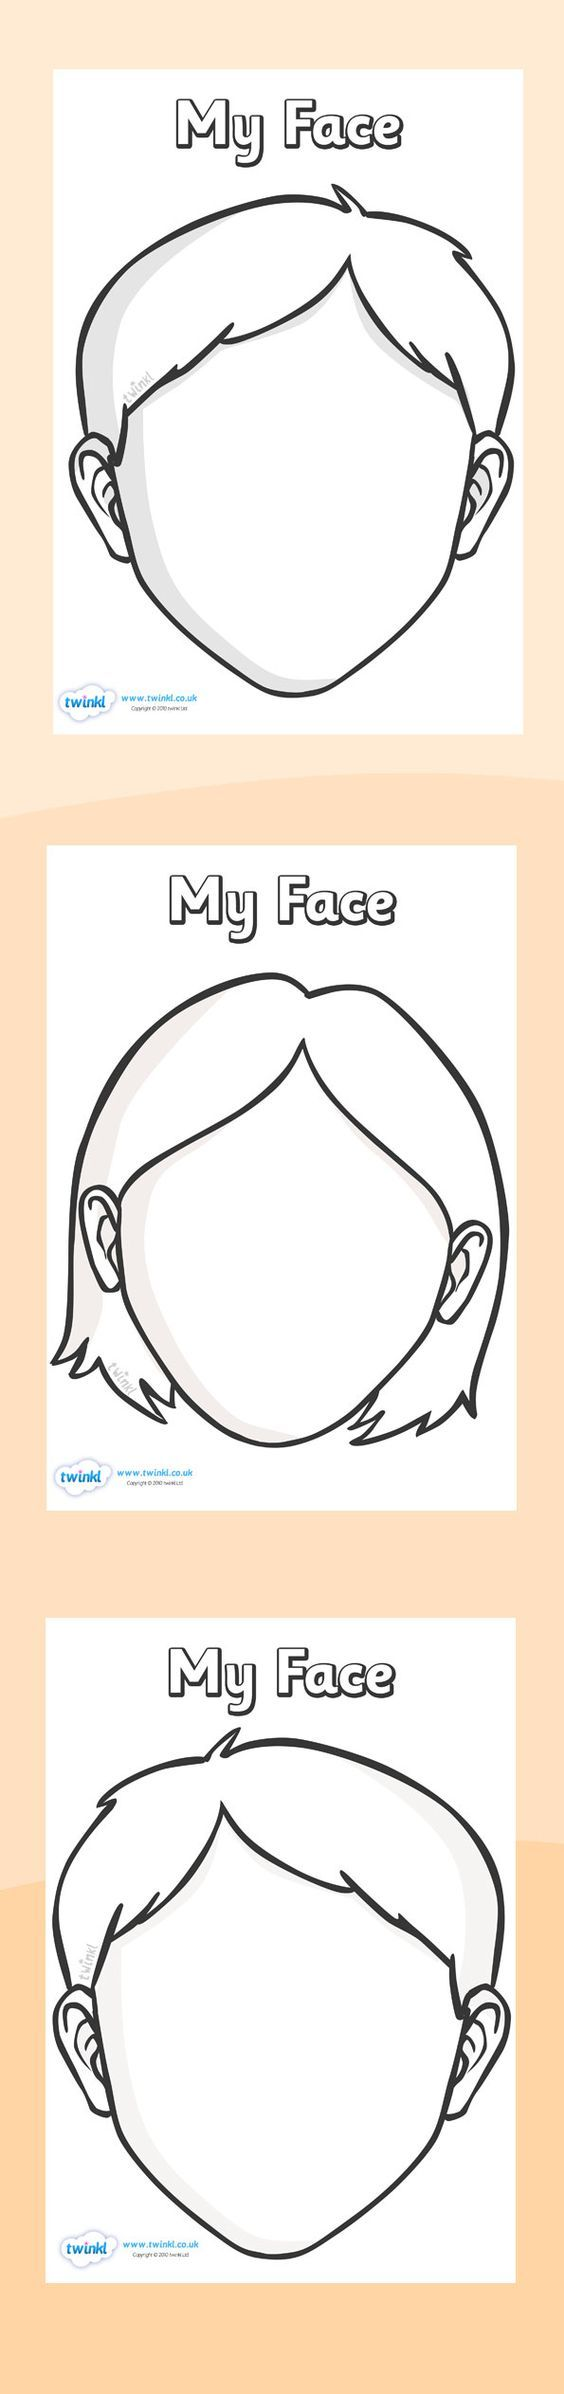 Twinkl Resources >> Blank Face Templates with Face Features >> Printable resources for Primary, EYFS, KS1 and SEN.  Thousands of classroom displays and teaching aids! Topics, Ourselves, Face, Templates, Features: